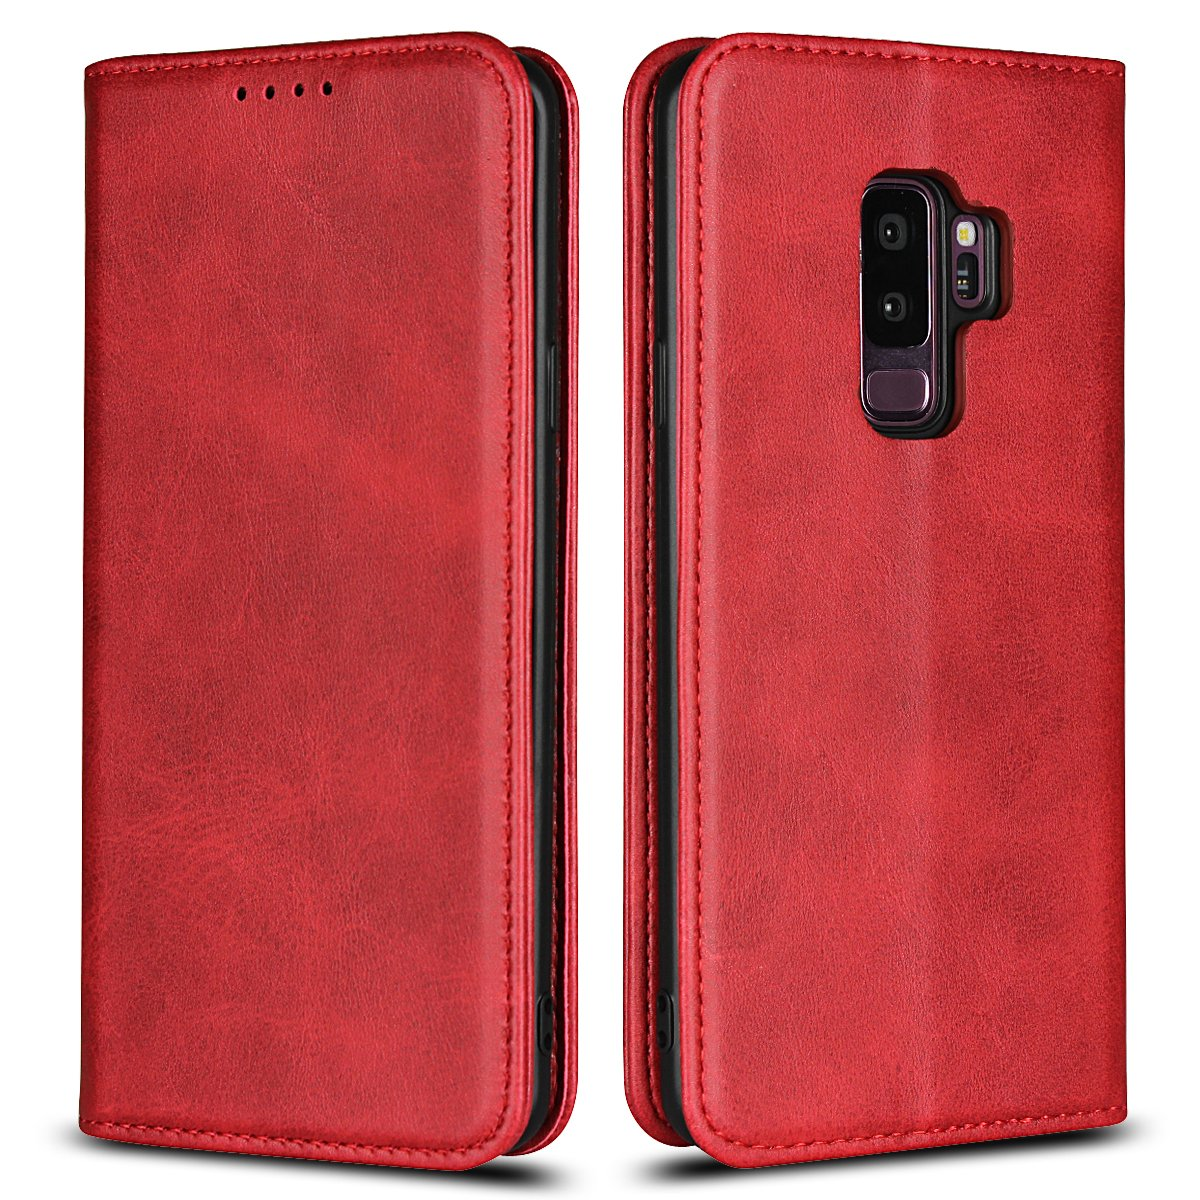 Jaorty Galaxy S9 Plus Wallet Case, Samsung S9 Plus Case, Premium PU Leather Flip Folio Case with Card Slot, Stand Holder and Magnetic Closure [TPU Shockproof Interior Protective Case], Red Wine